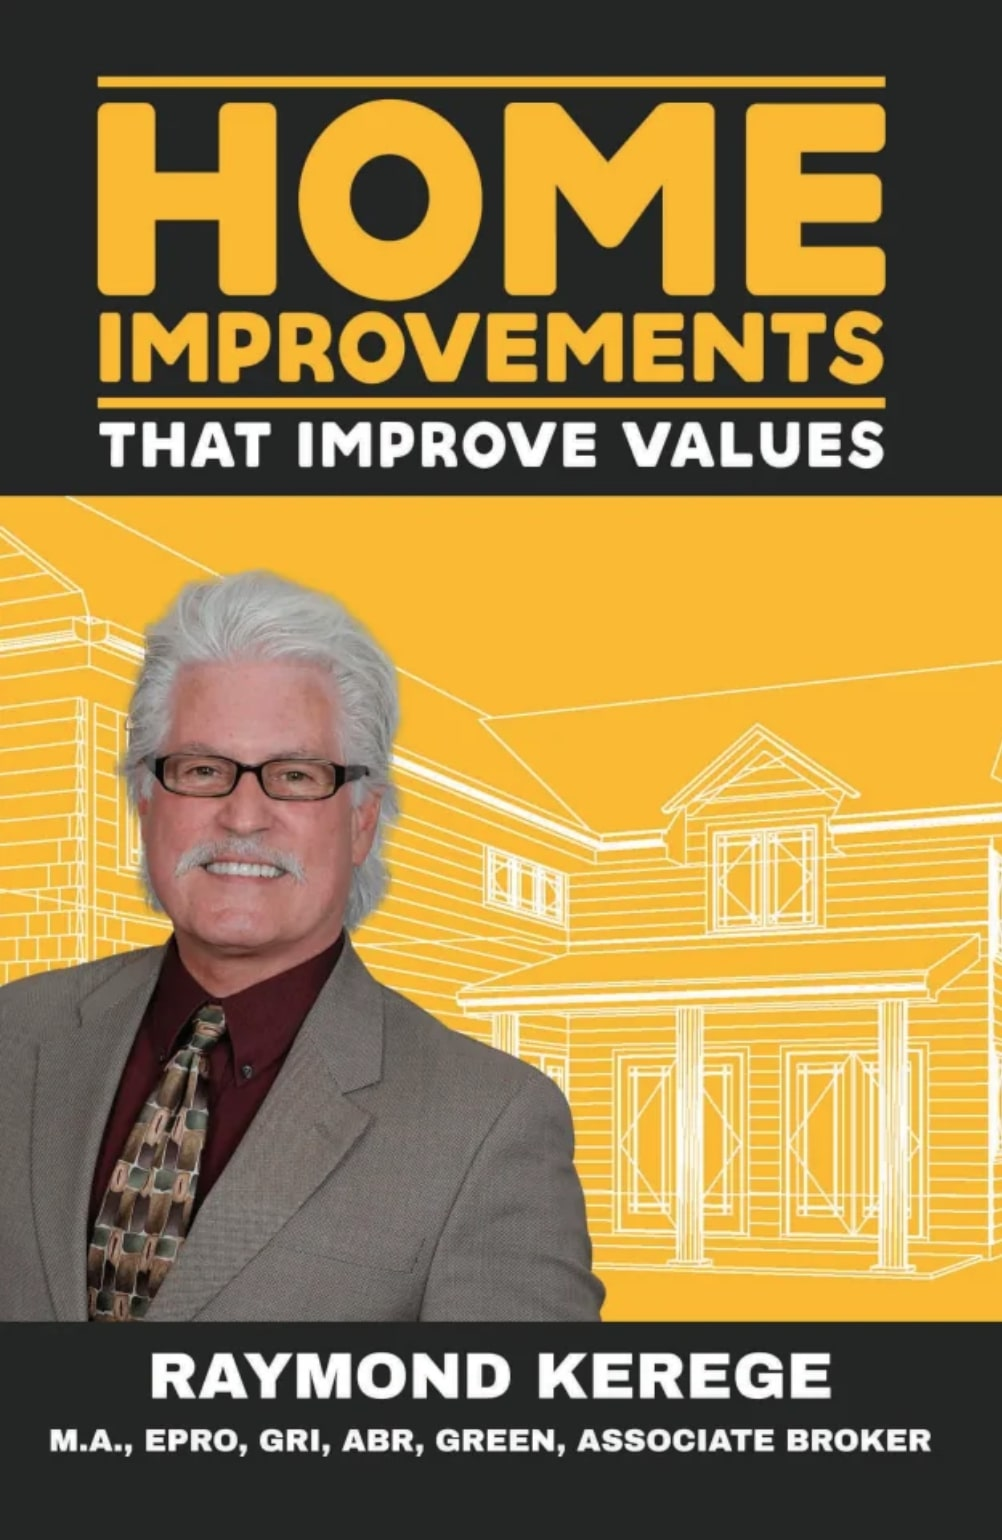 Home Improvements that improve value